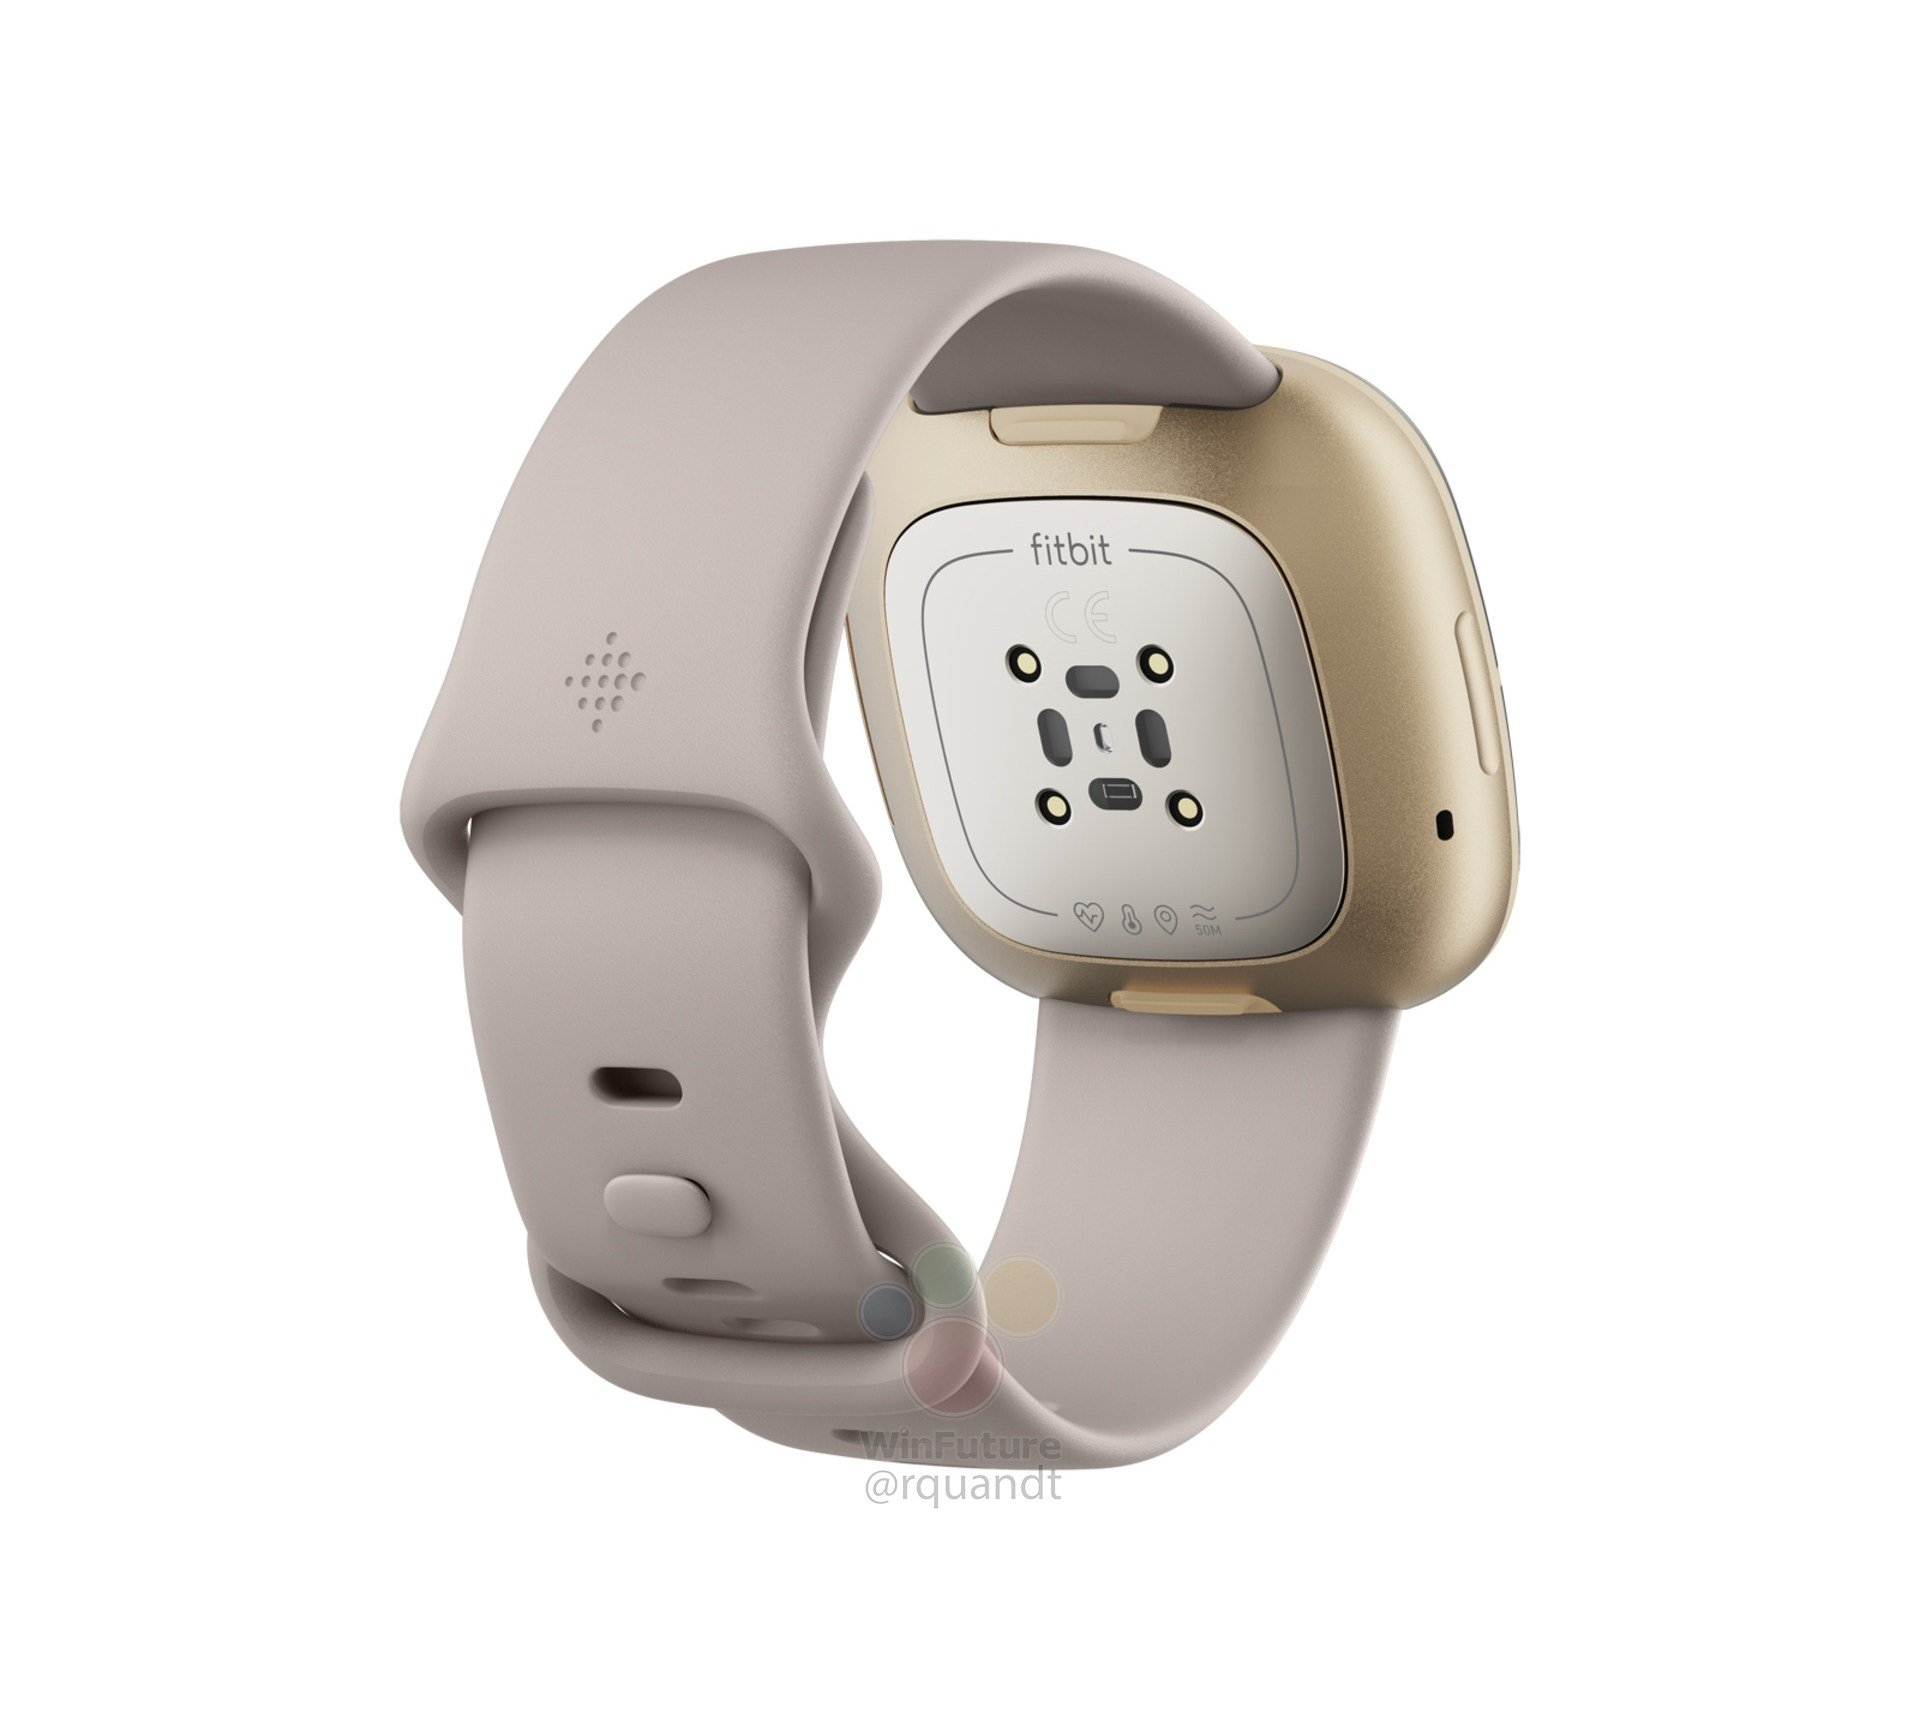 Fitbit's fall line-up leaks, including the new Fitbit Sense and Versa 3